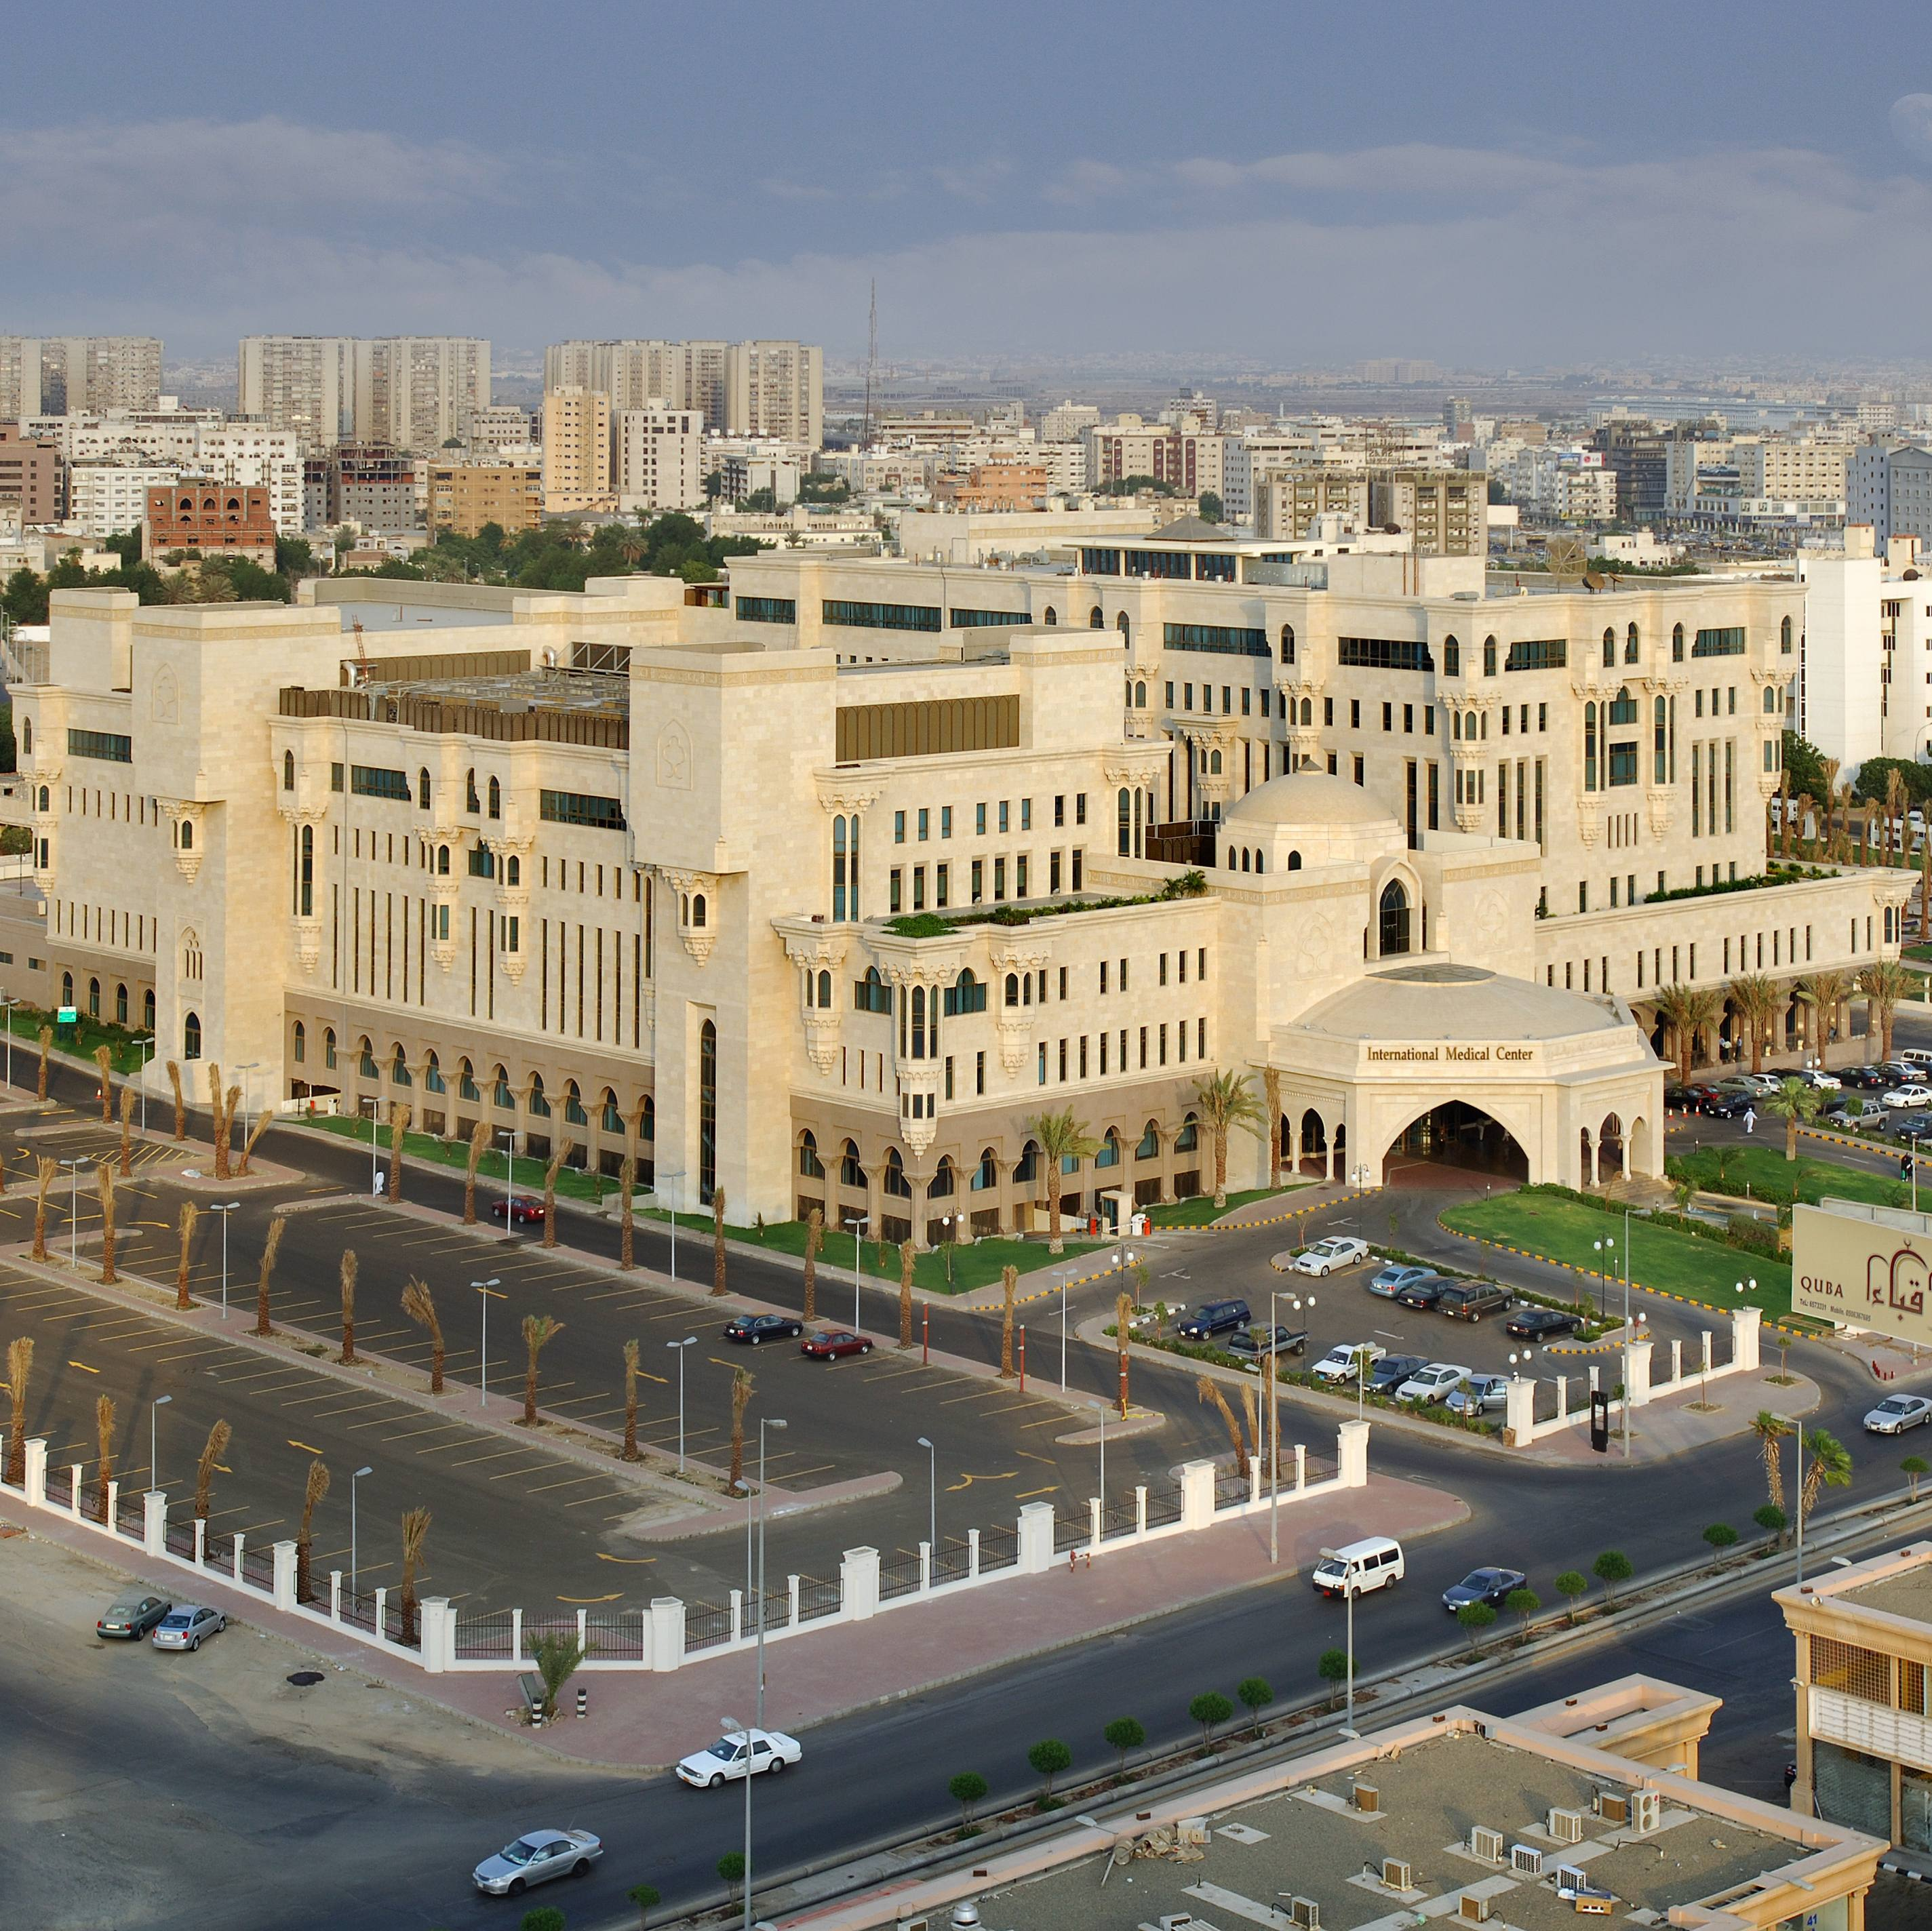 International Medical Center in Saudi Arabia